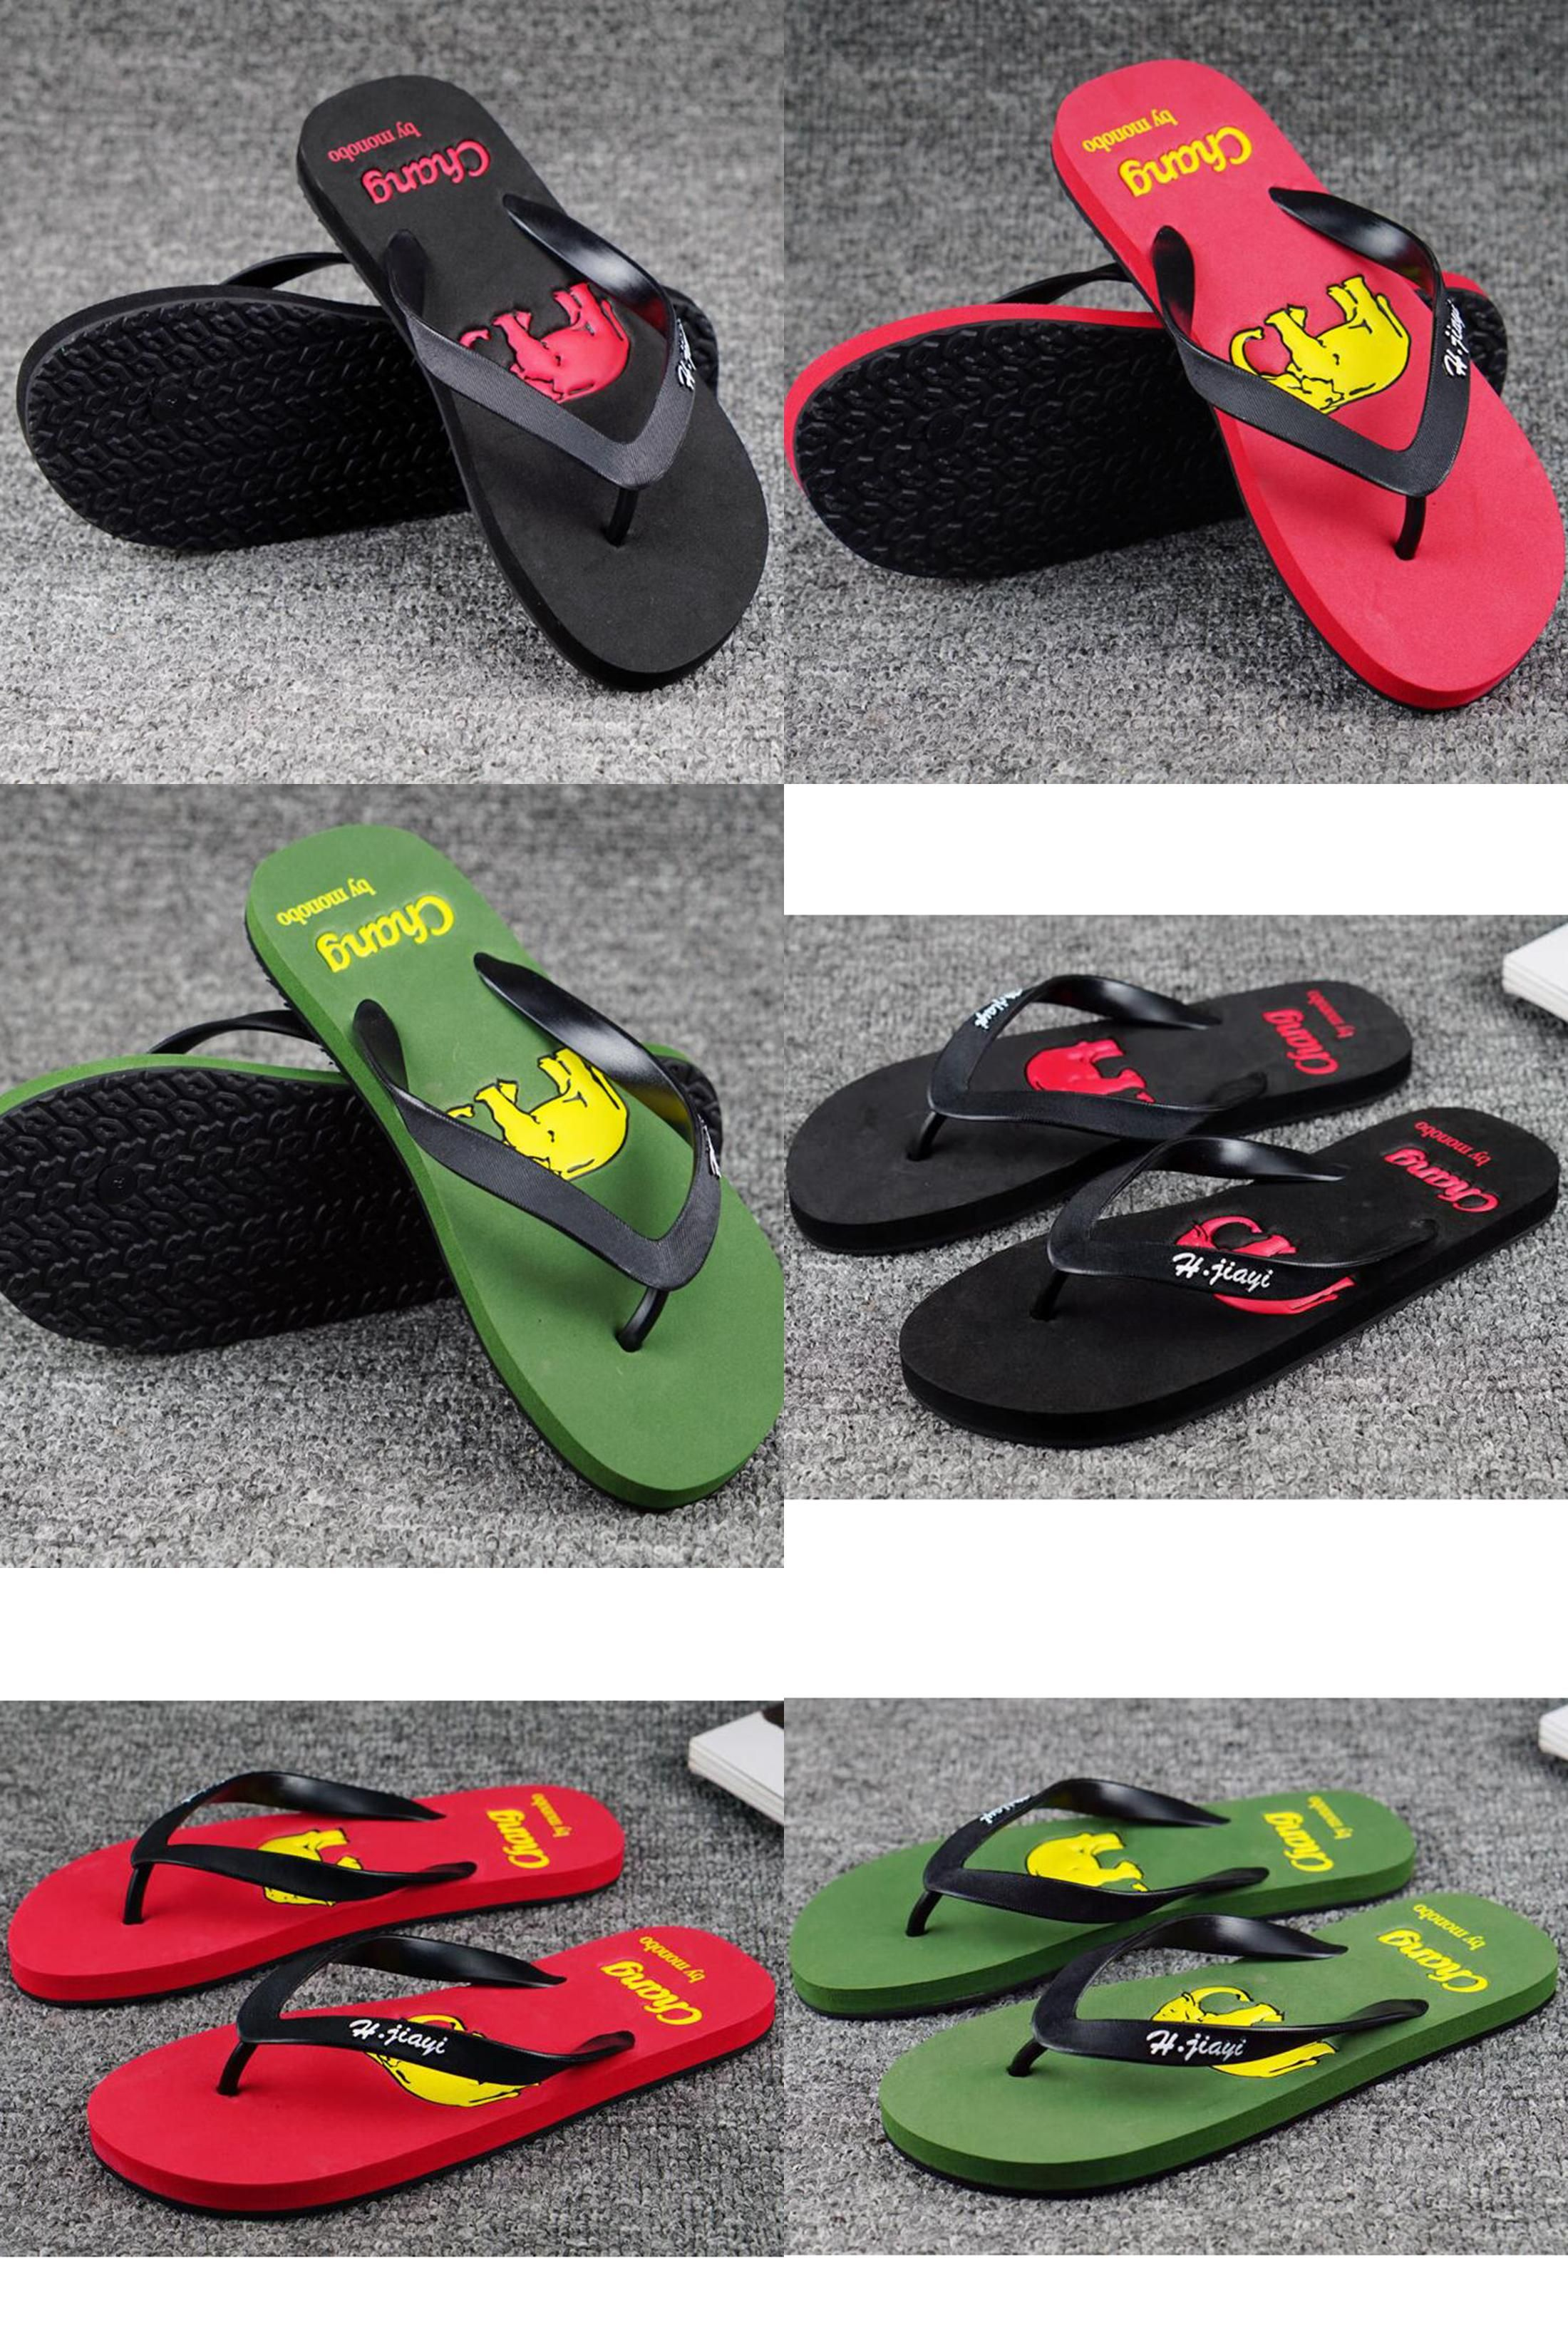 a6b833fcfcd3  Visit to Buy  2017 New flat sandals men candy color male summer beach  slippers